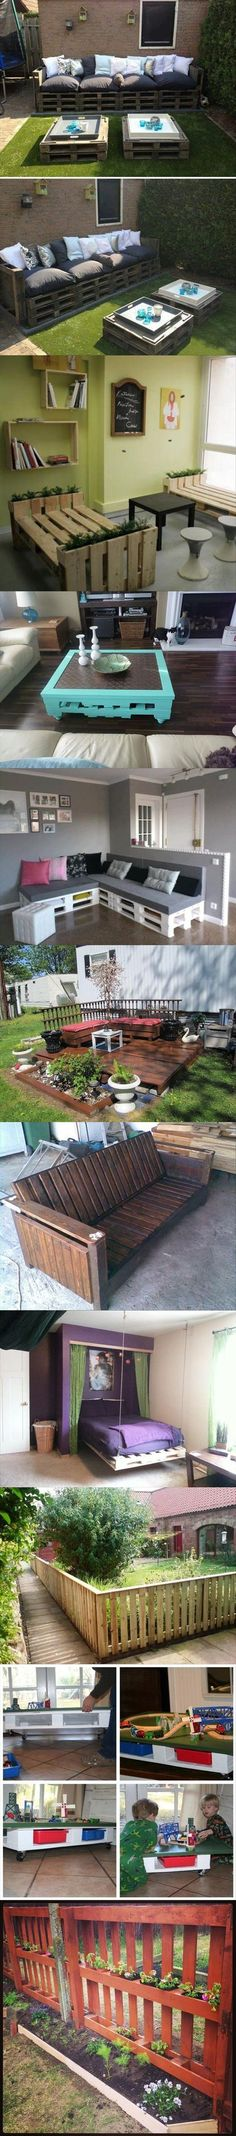 #PALLETS: Amazing Uses For Old Pallets - DIY Projects - http://dunway.info/pallets/index.html: